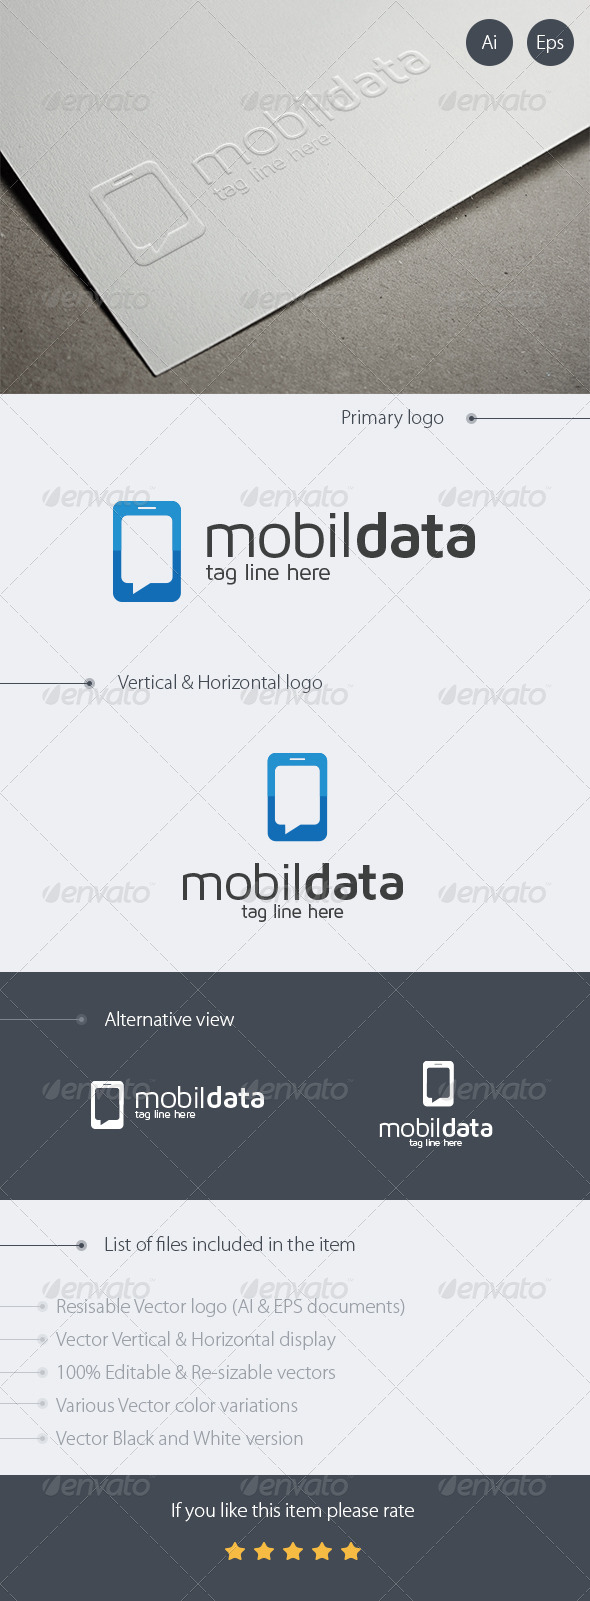 Mobile Data Logo Design